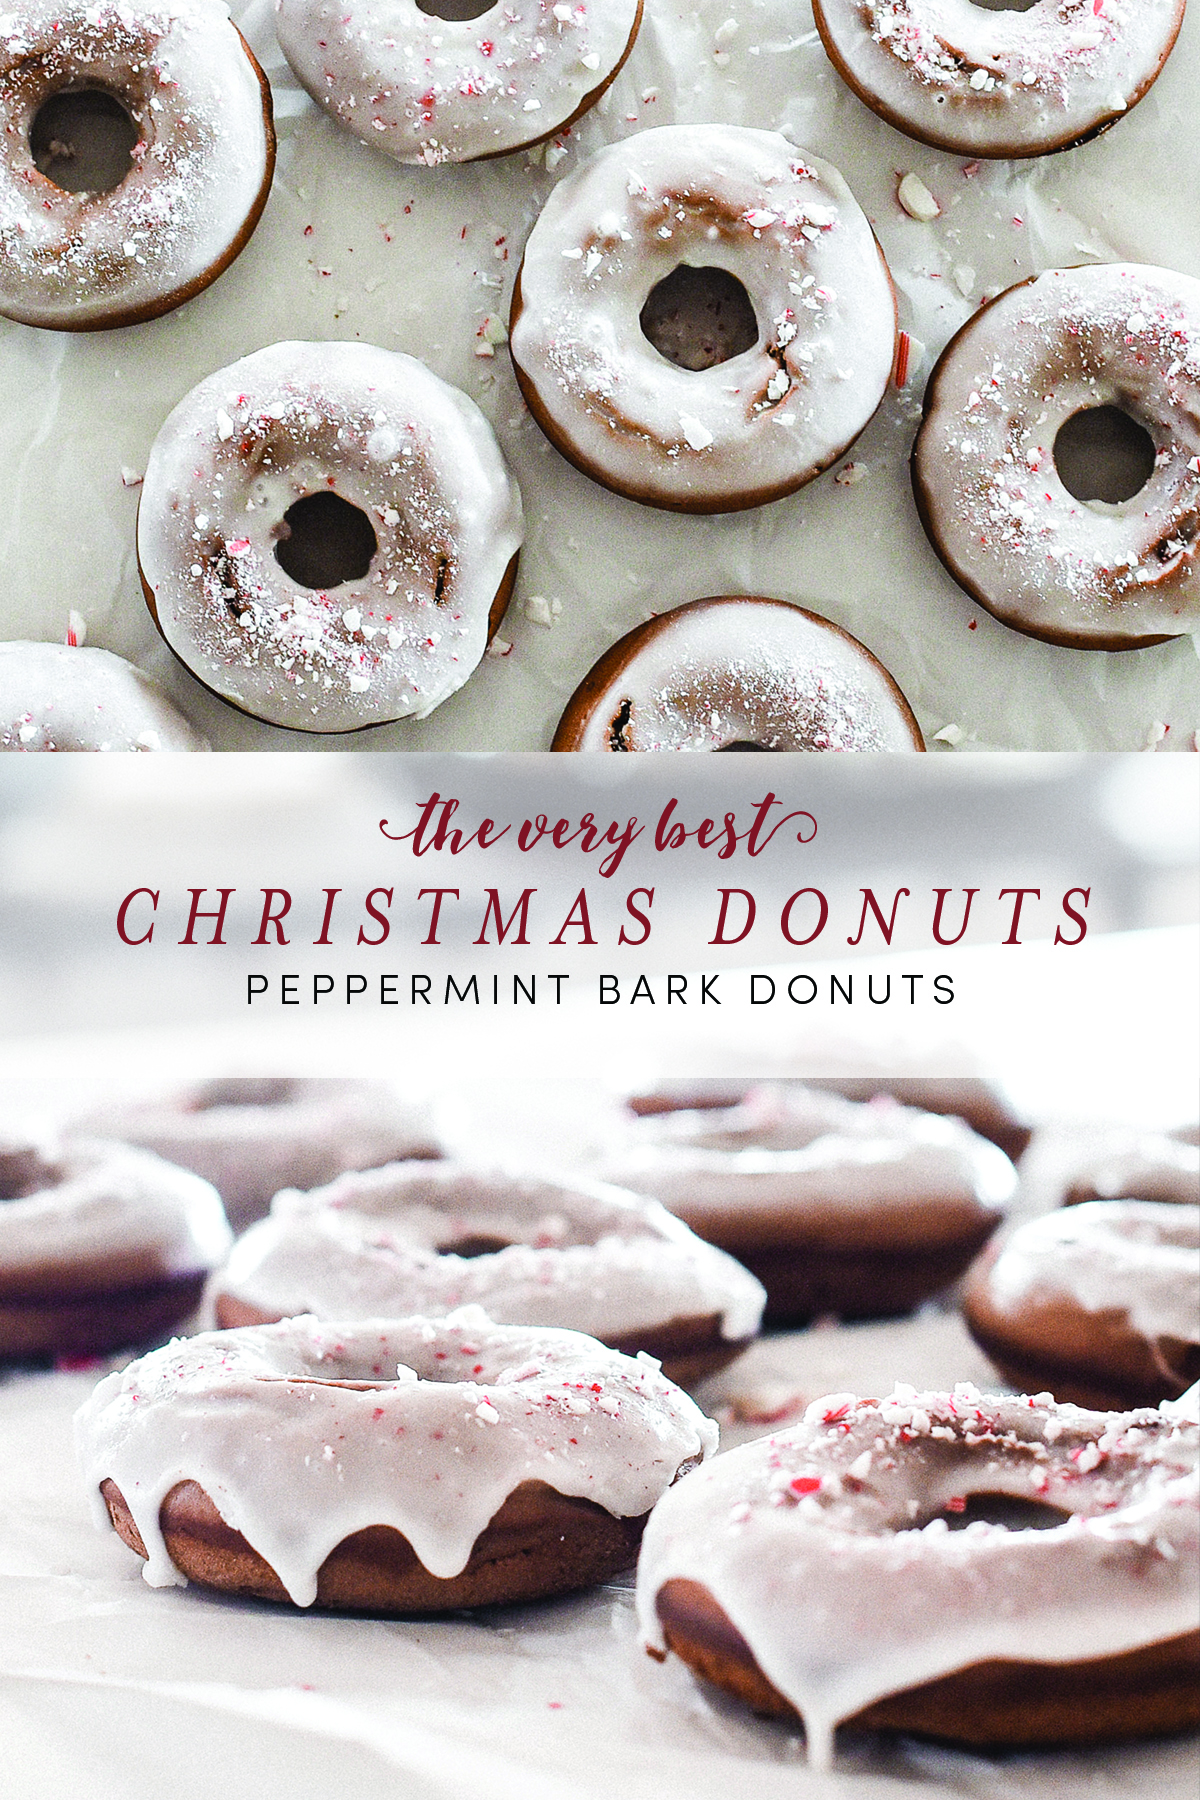 Christmas donuts are the perfect Christmas morning treat - these baked peppermint bark donuts are delicious! boxwoodavenue.com #christmastreats #christmasbaking